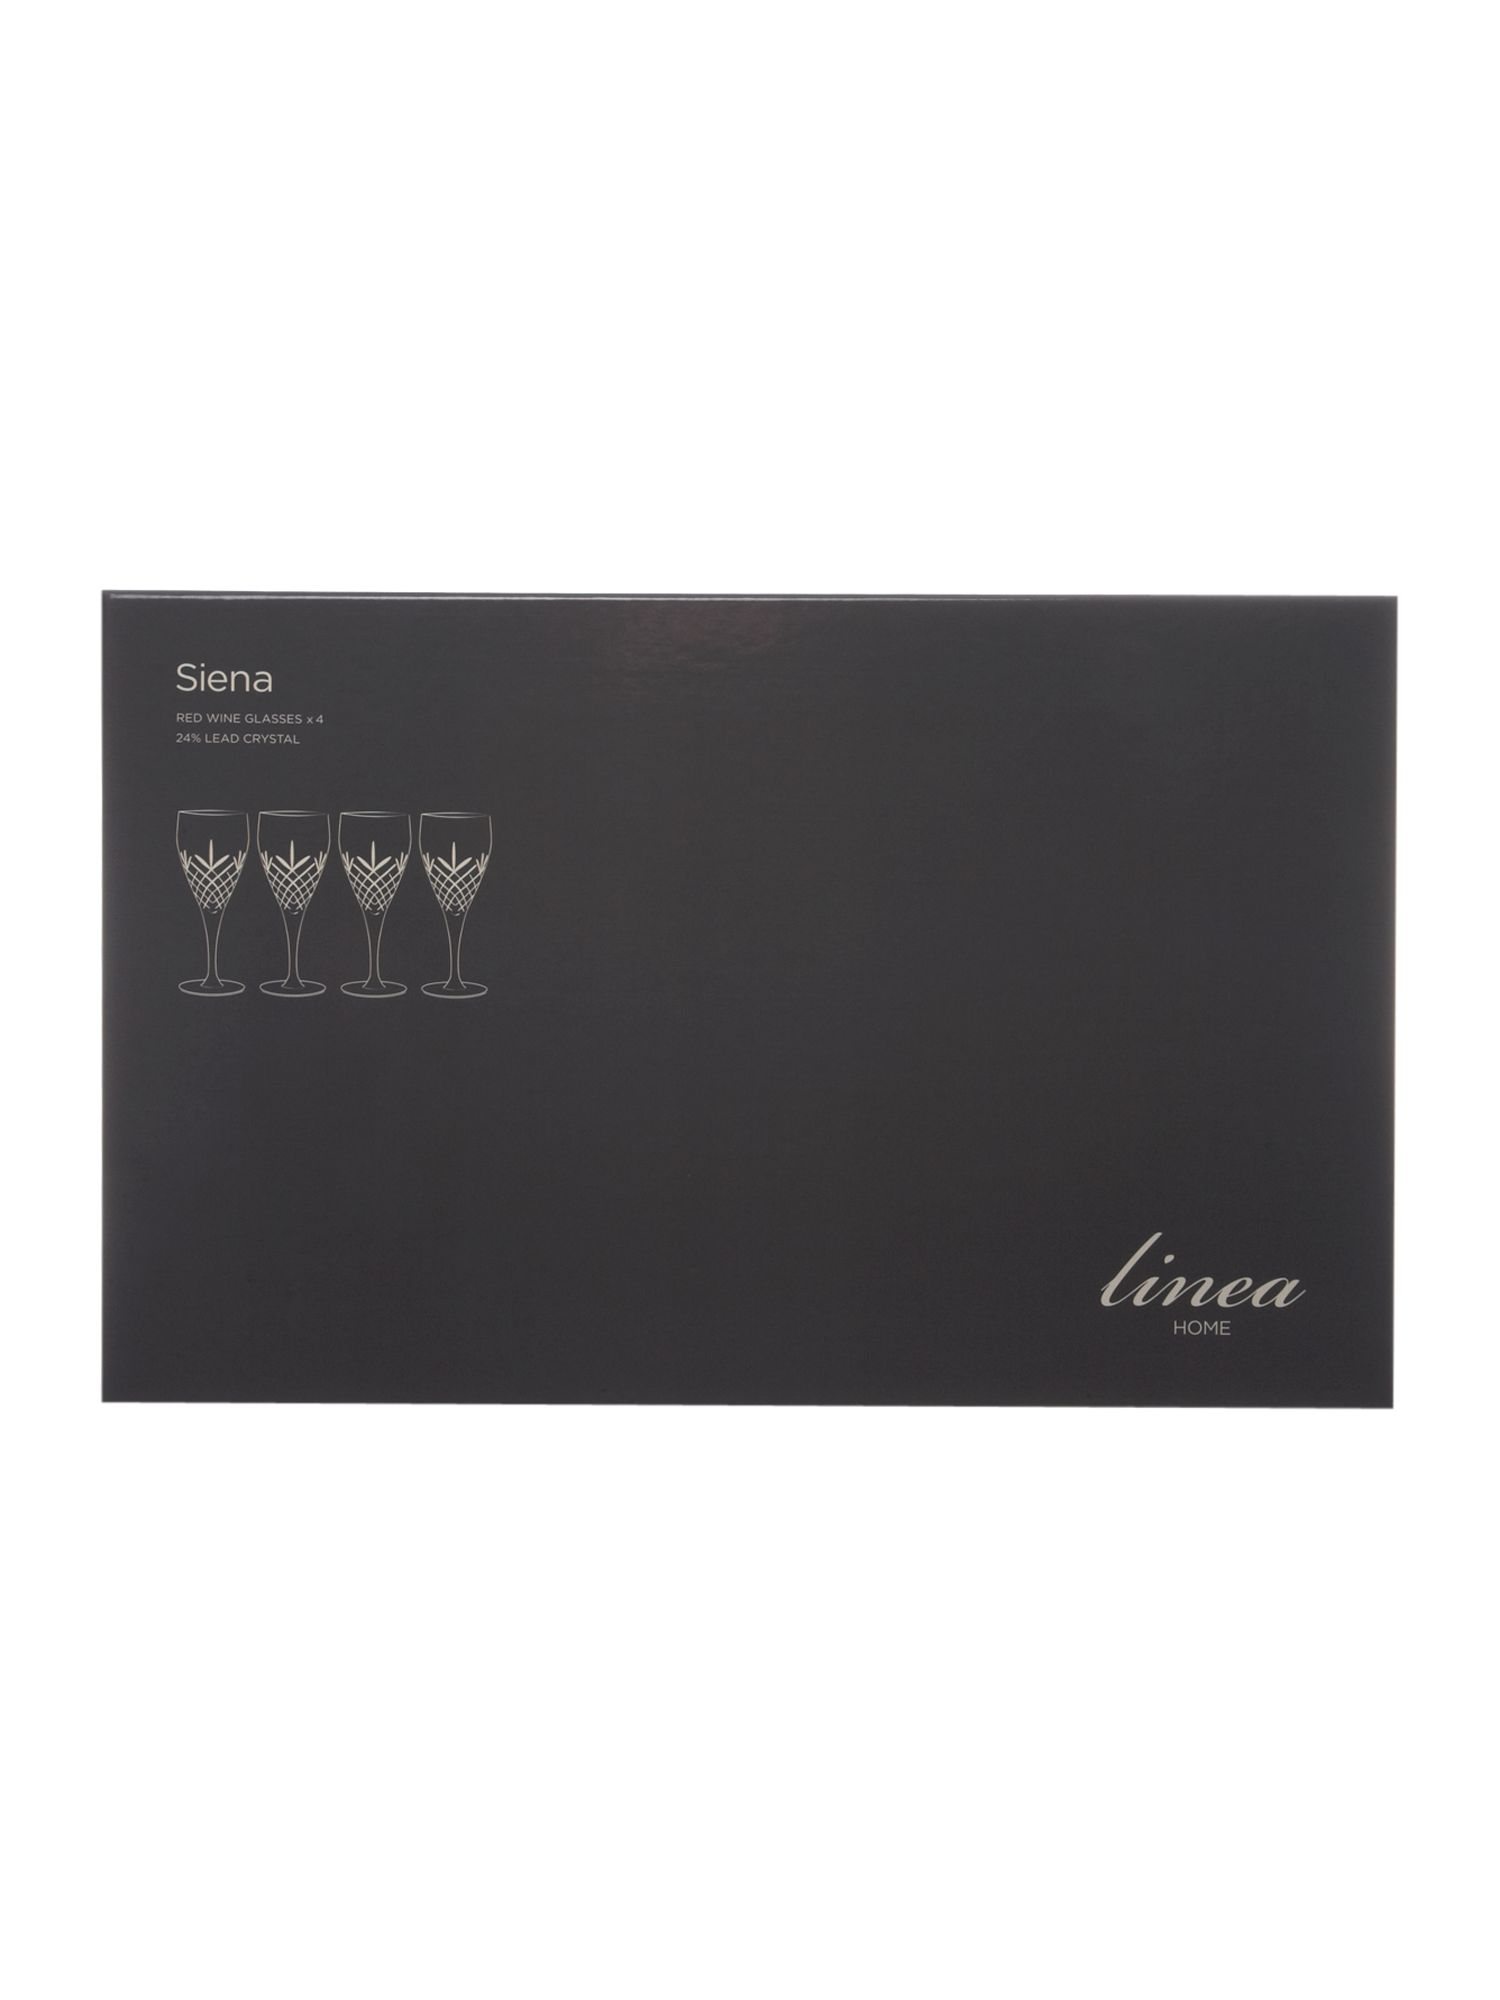 Siena red wine glasses box of 4